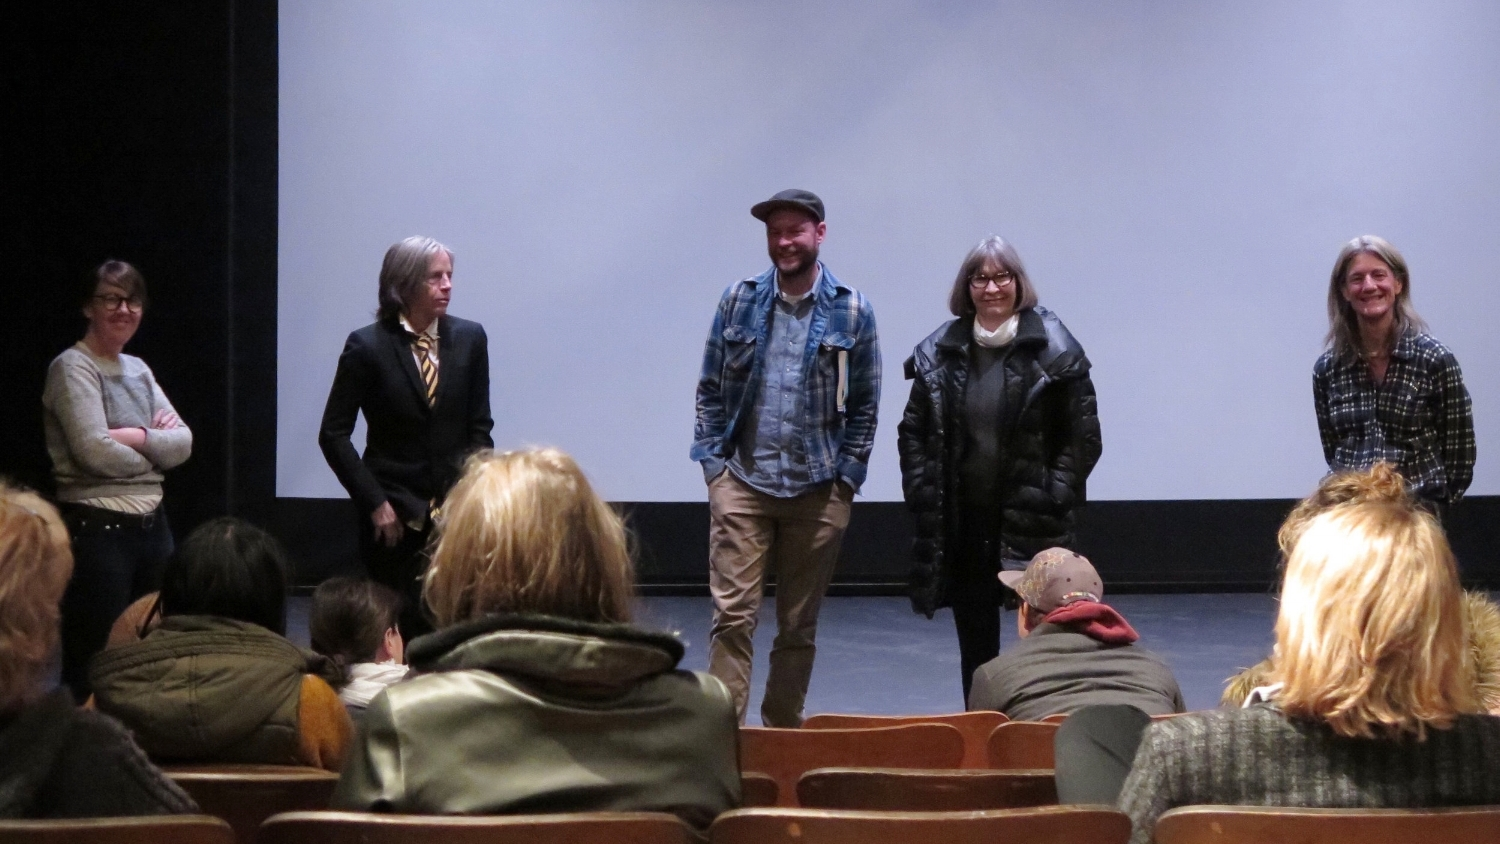 From left, Caitlin Murray, Eileen Myles, Tim Johnson, Carolyn Pfeiffer, and Peggy O'Brien. Not pictured is Elise Pepple.